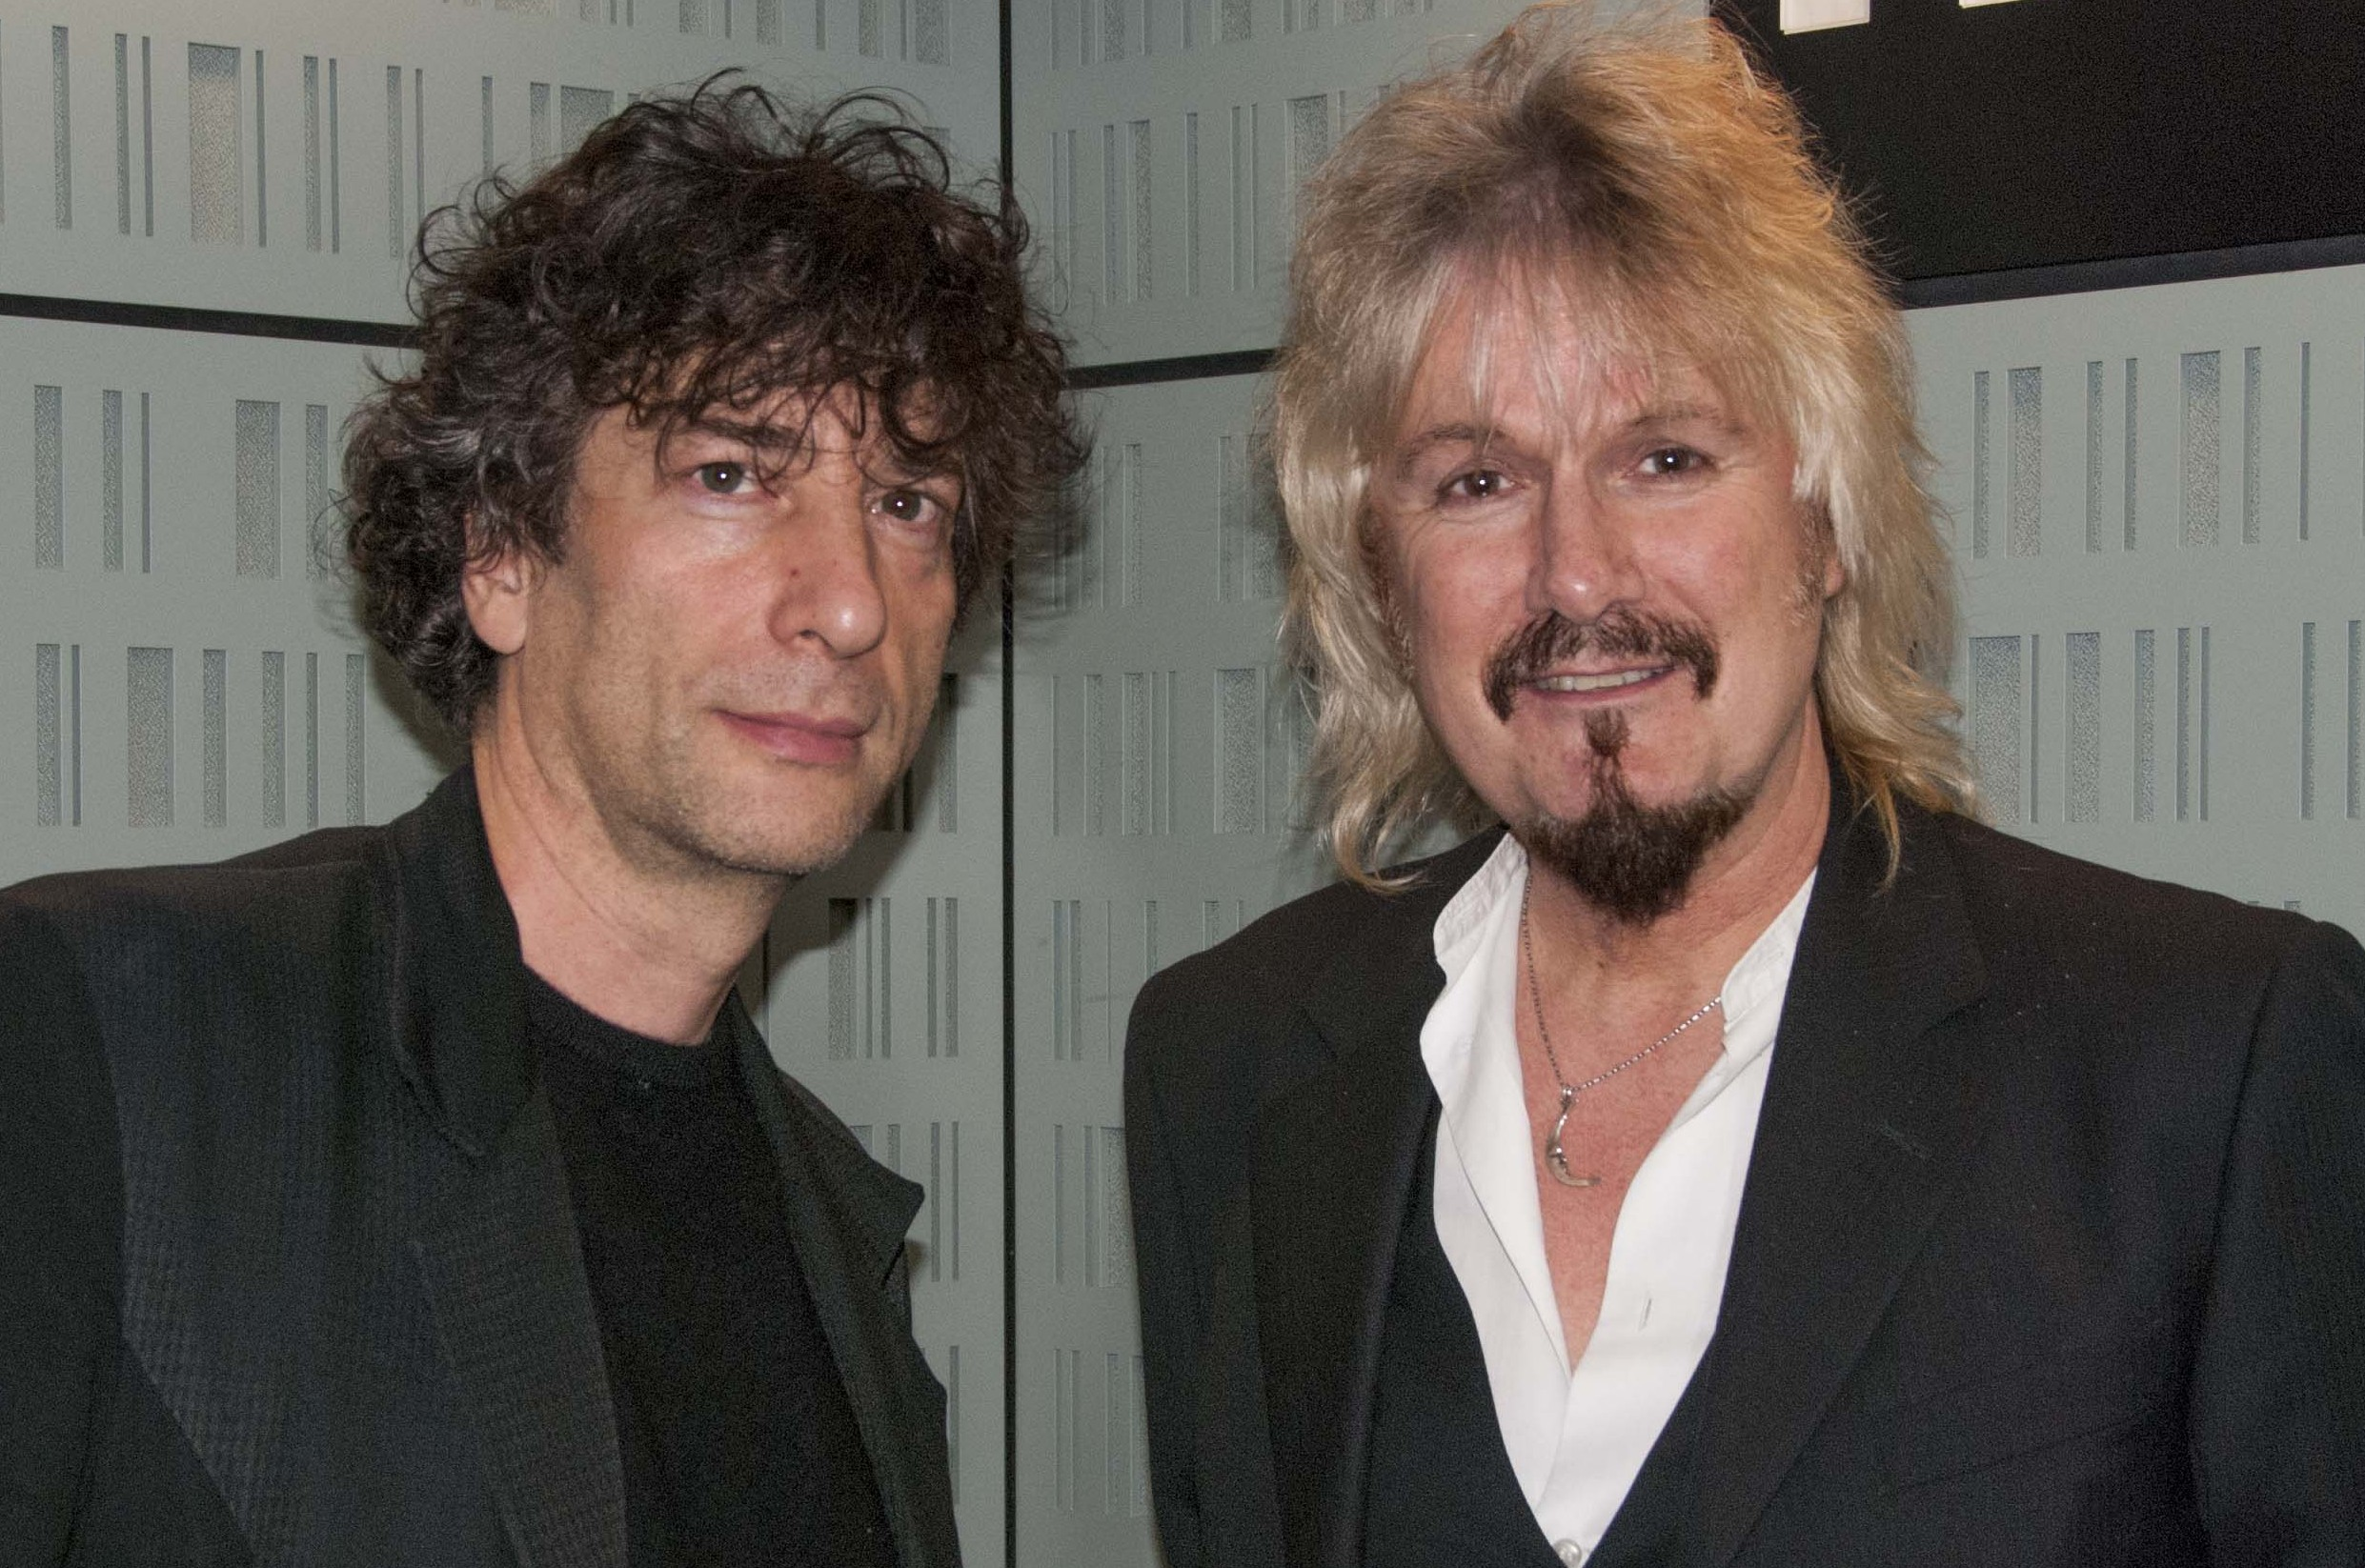 Neil Gaiman and Dirk Maggs